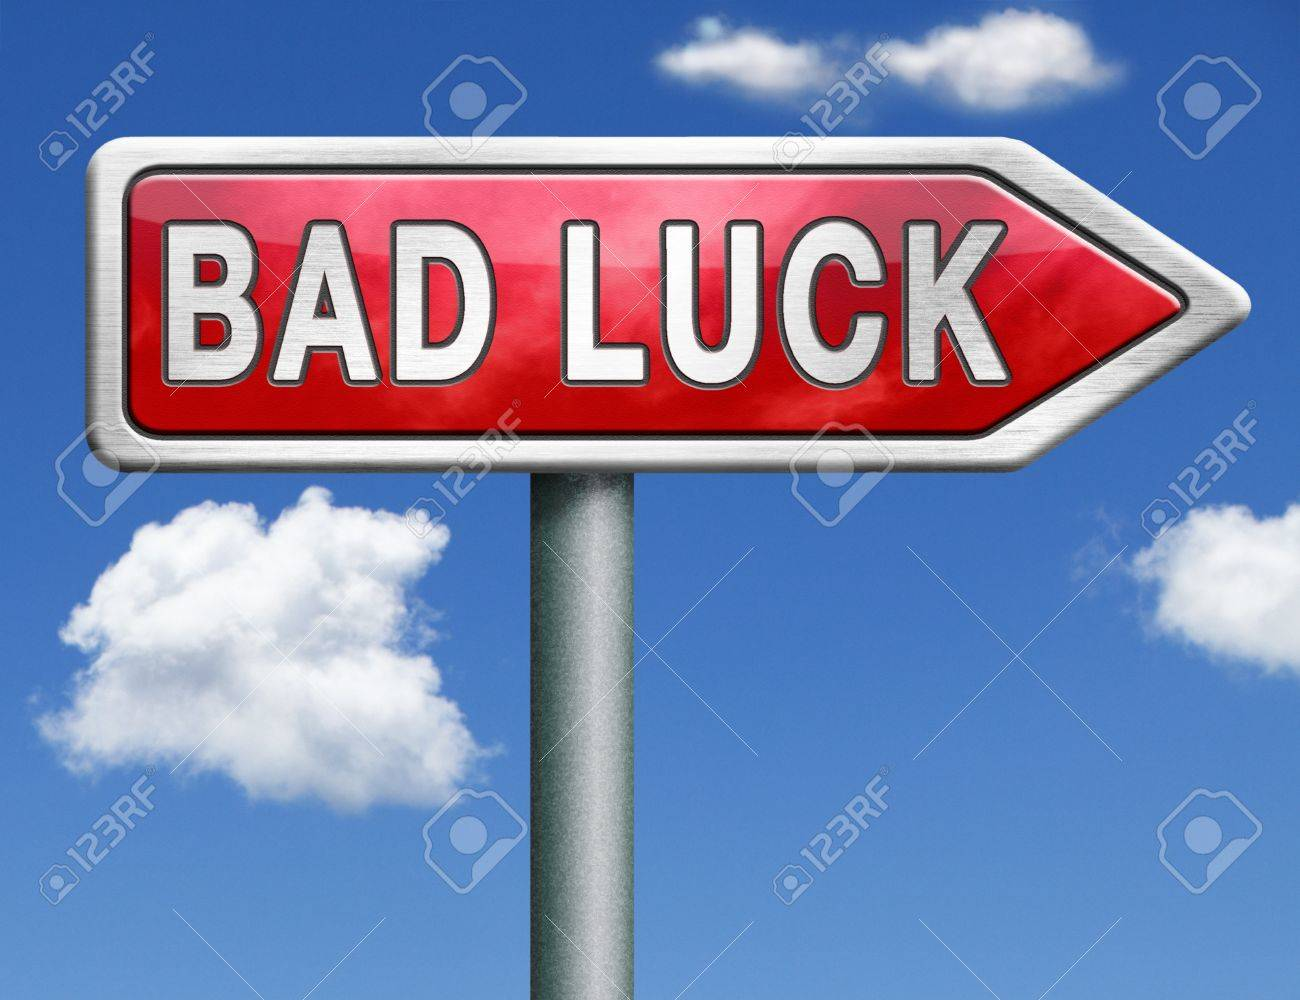 bad luck road sign unlucky bad day or bad fortune, misfortune arrow Stock Photo - 20125373